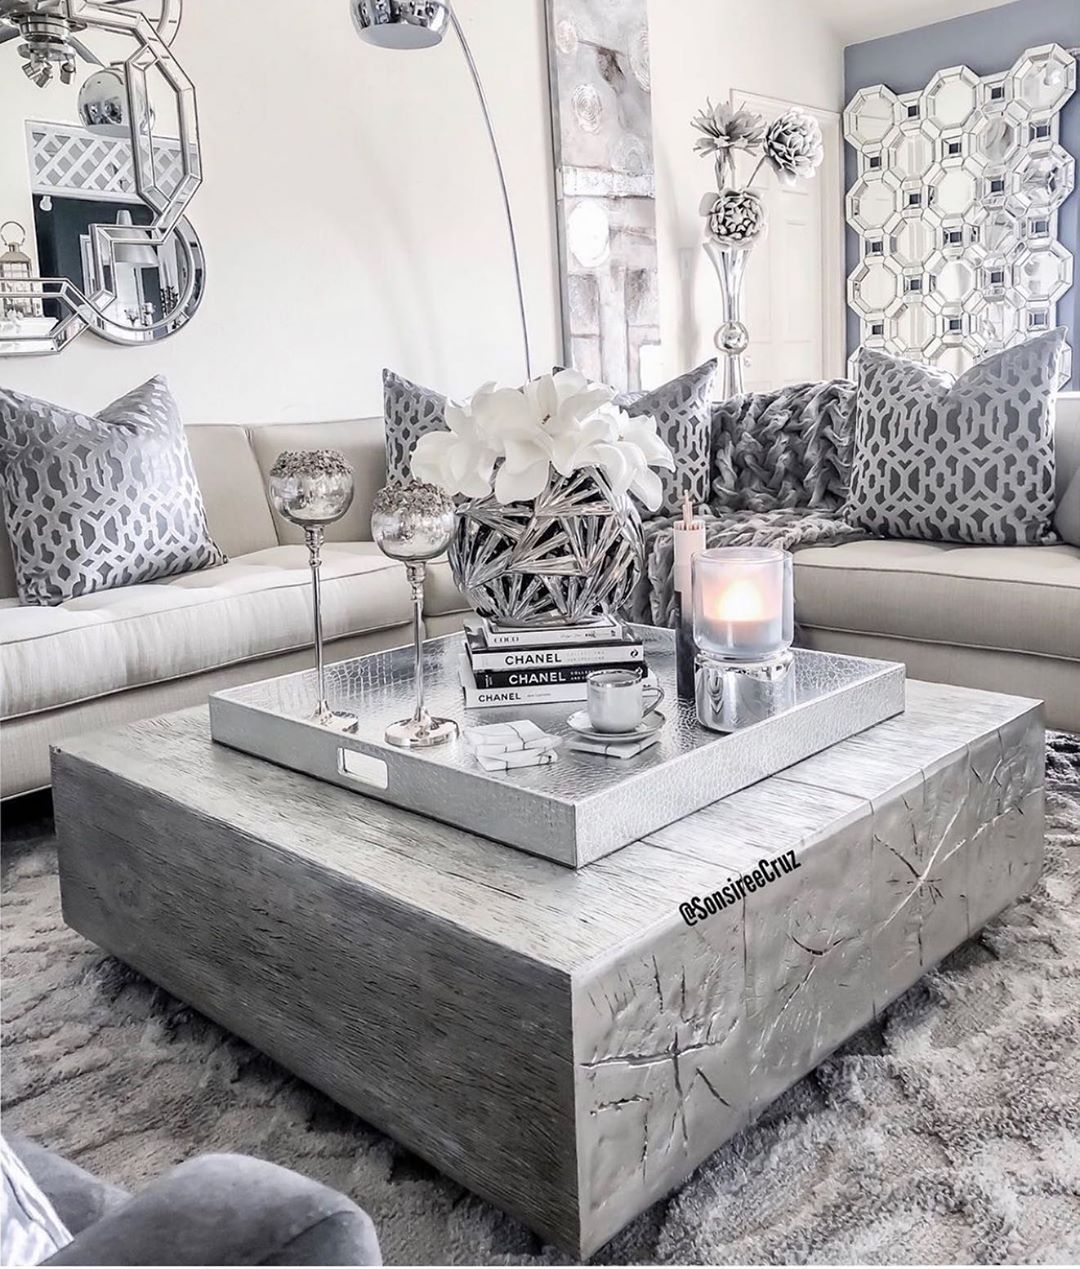 We Are Loving All The Silver Glam Mirrors And Silver Decor My Fav Double Tap And Ta Glam Living Room Decor Glam Living Room Living Room Decor Apartment #silver #mirrors #living #room